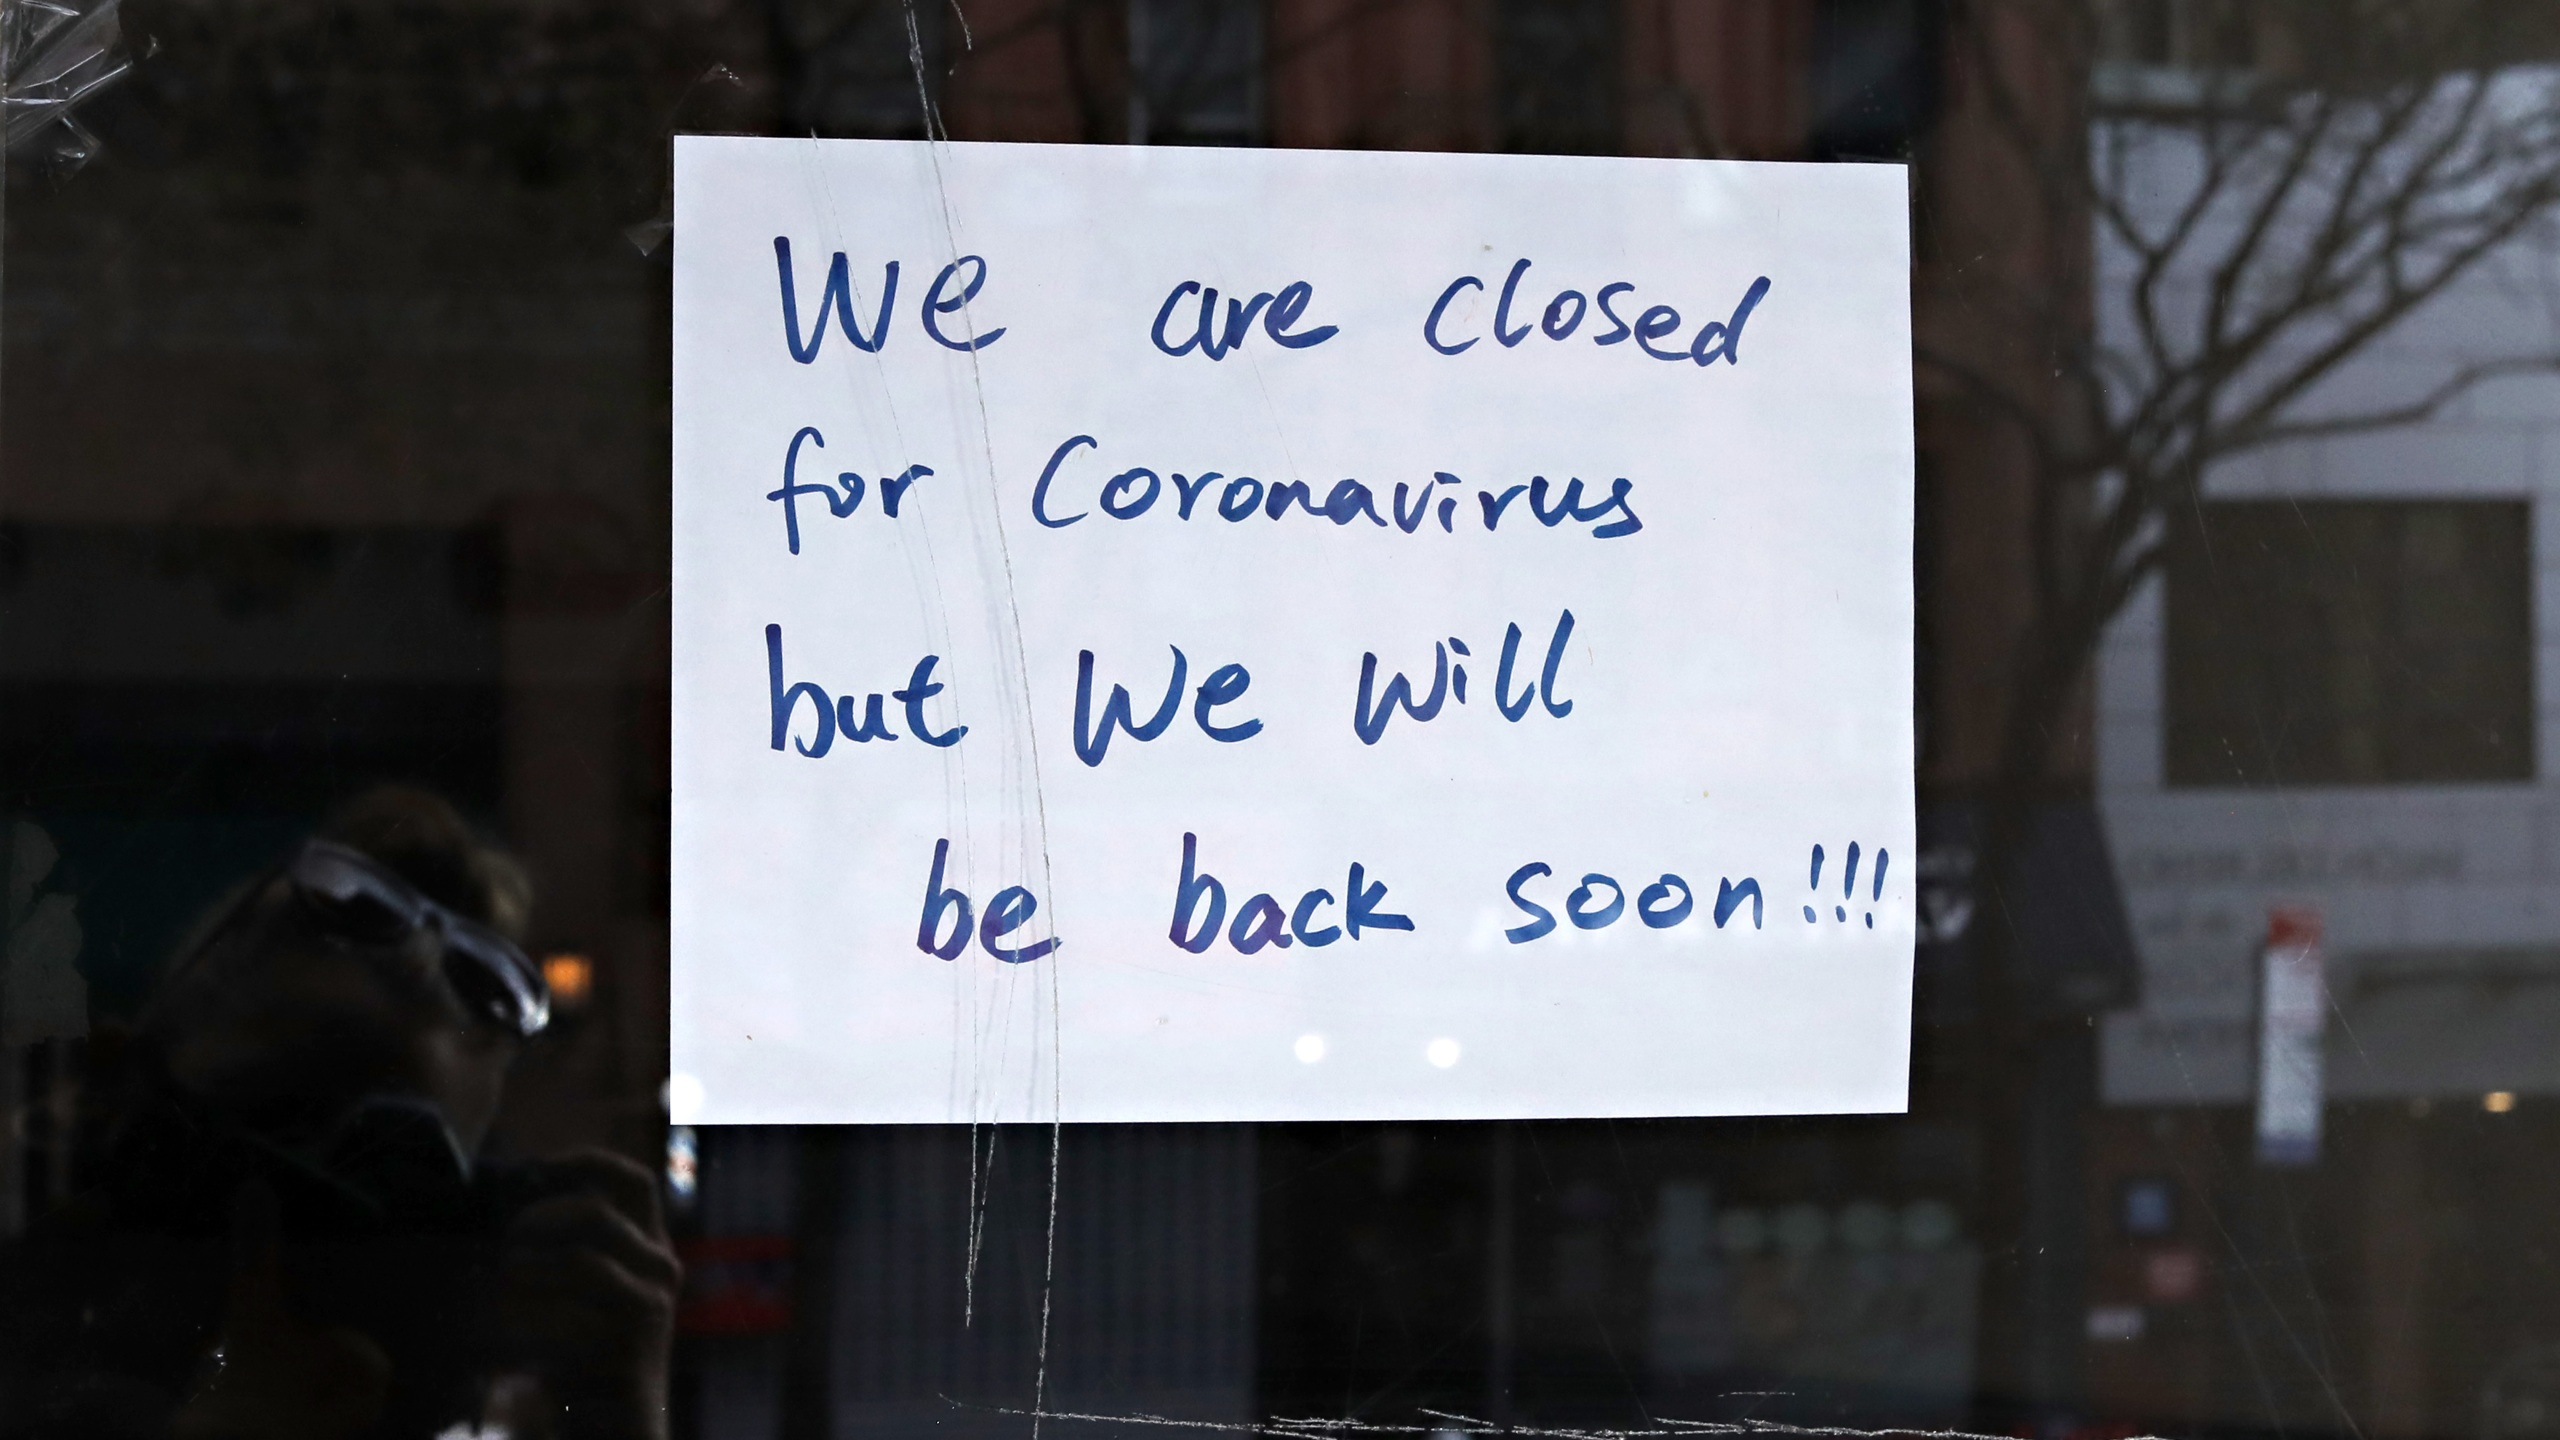 """A sign in a restaurant window reads """"we are closed for coronavirus but we will be back soon!!!"""" on April 21, 2020 in New York City. (Cindy Ord/Getty Images)"""